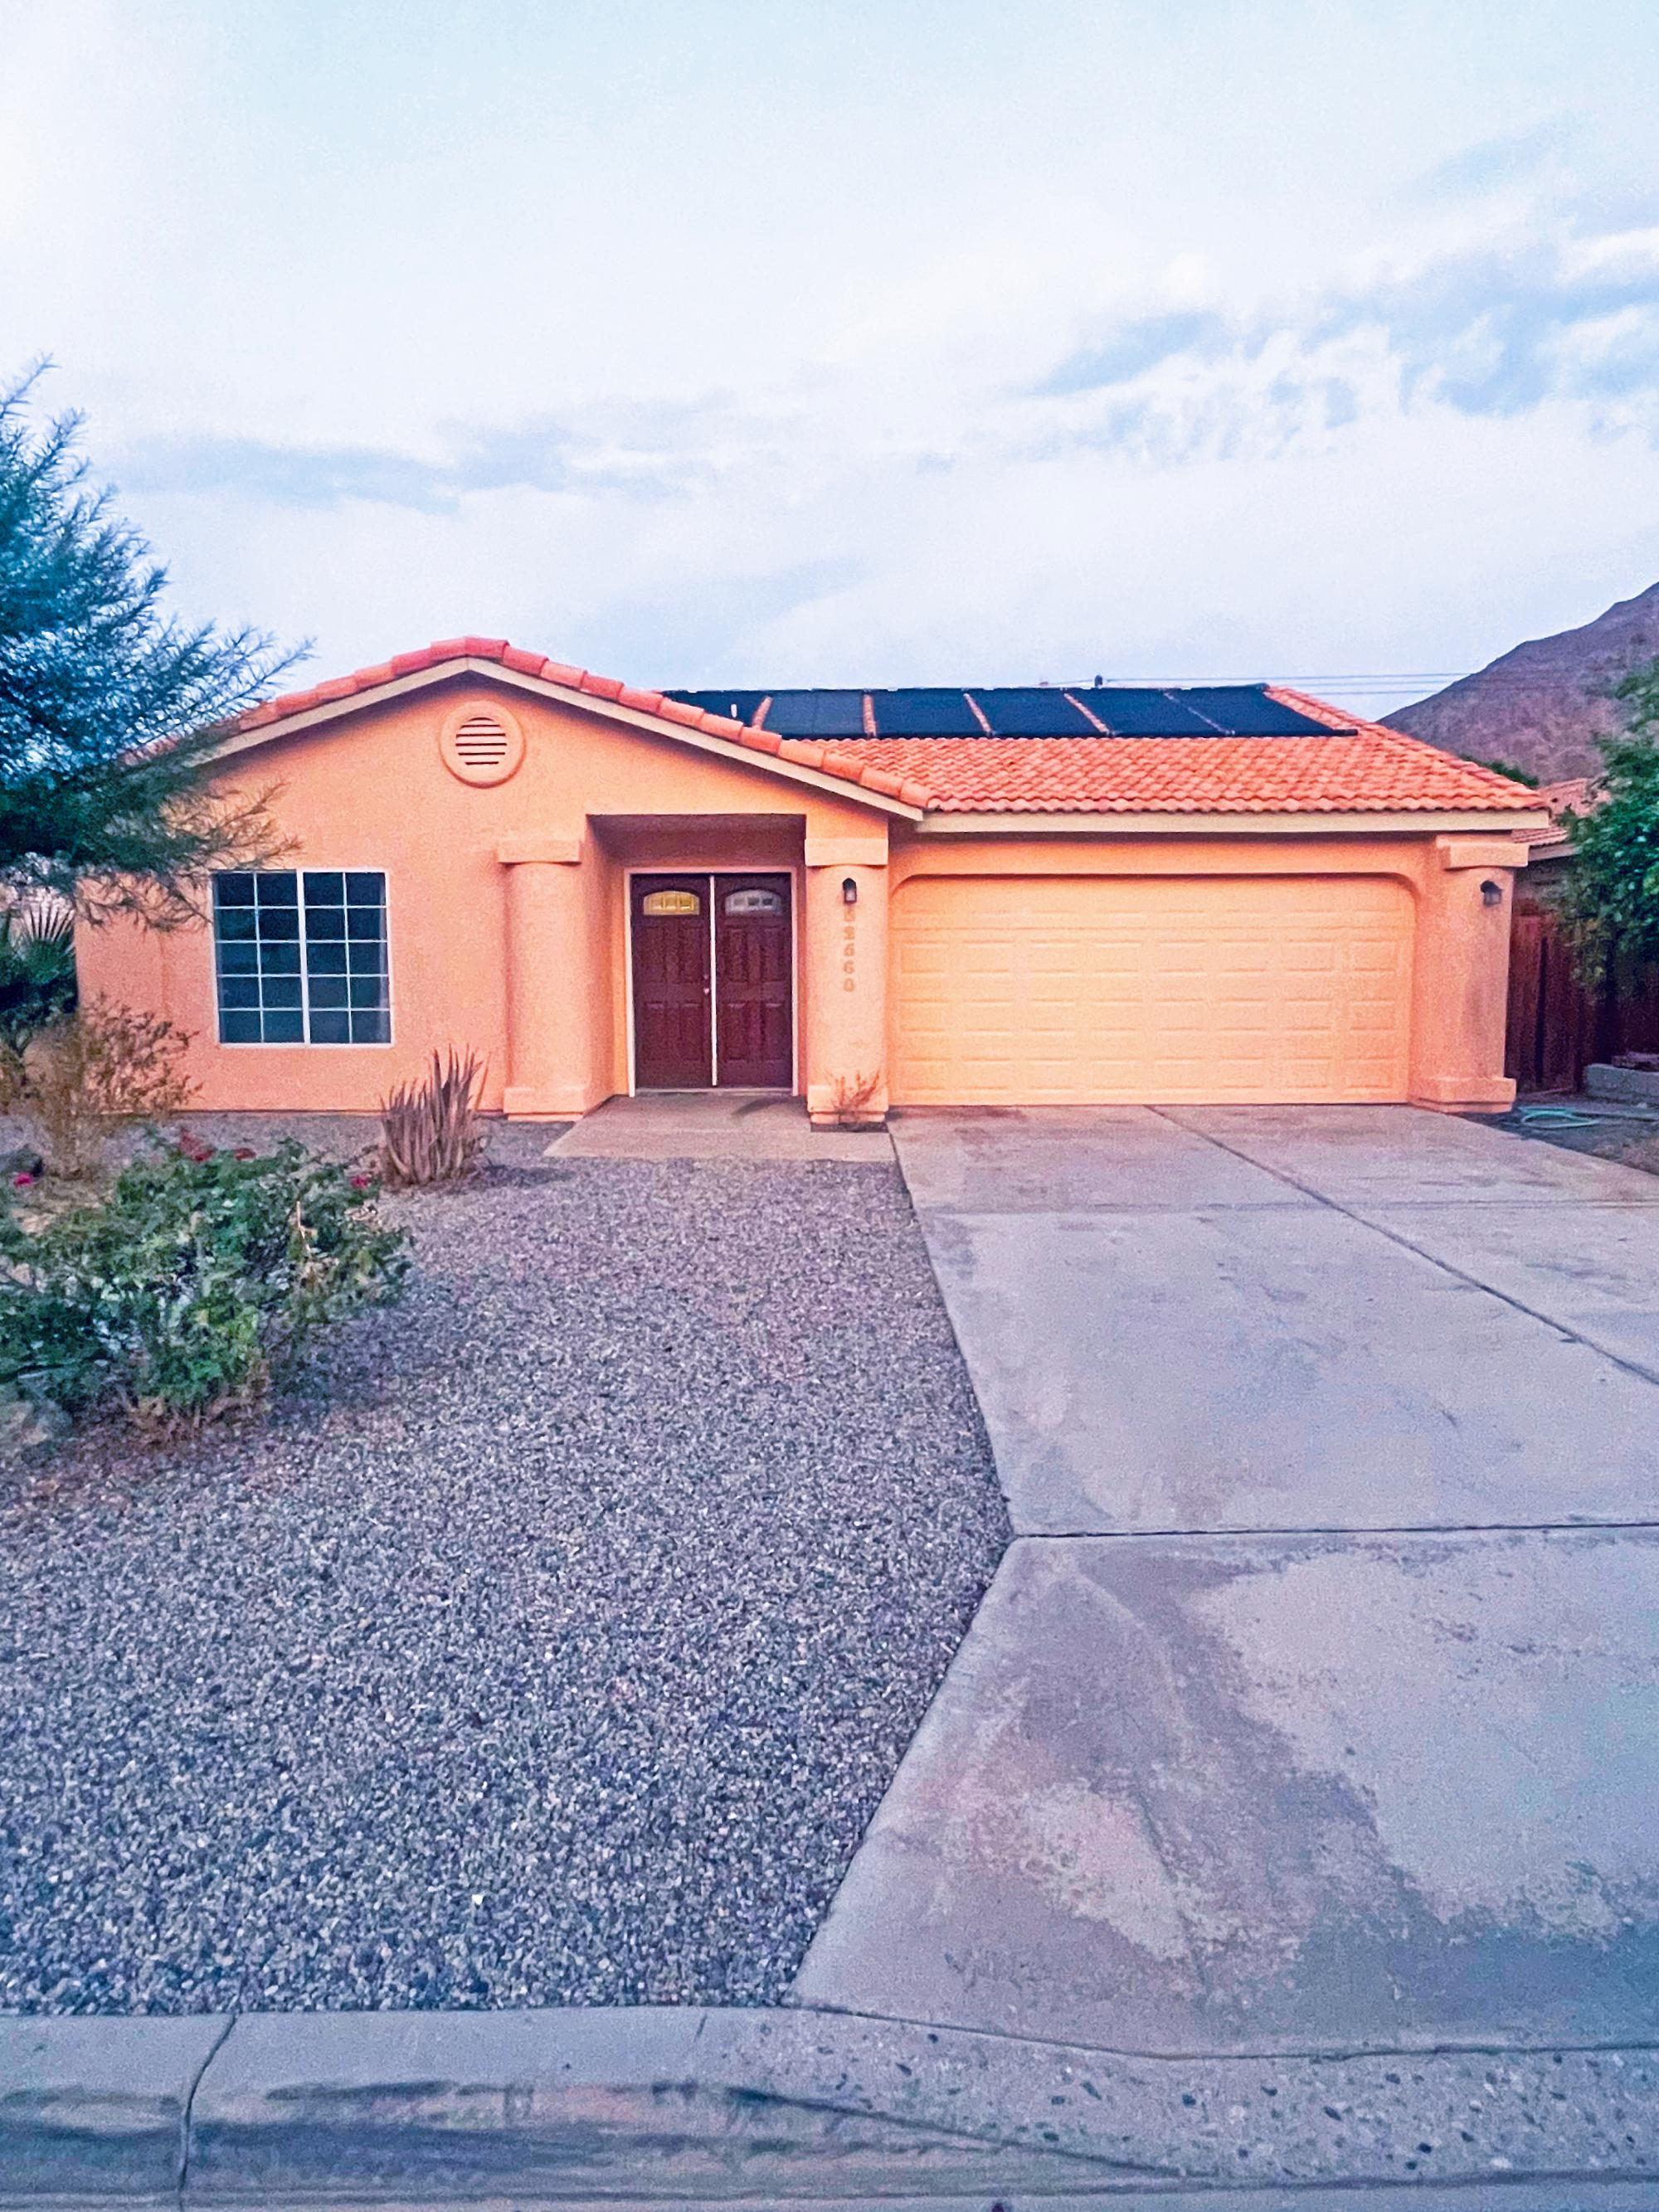 Picture of Home For Rent in La Quinta, California, United States